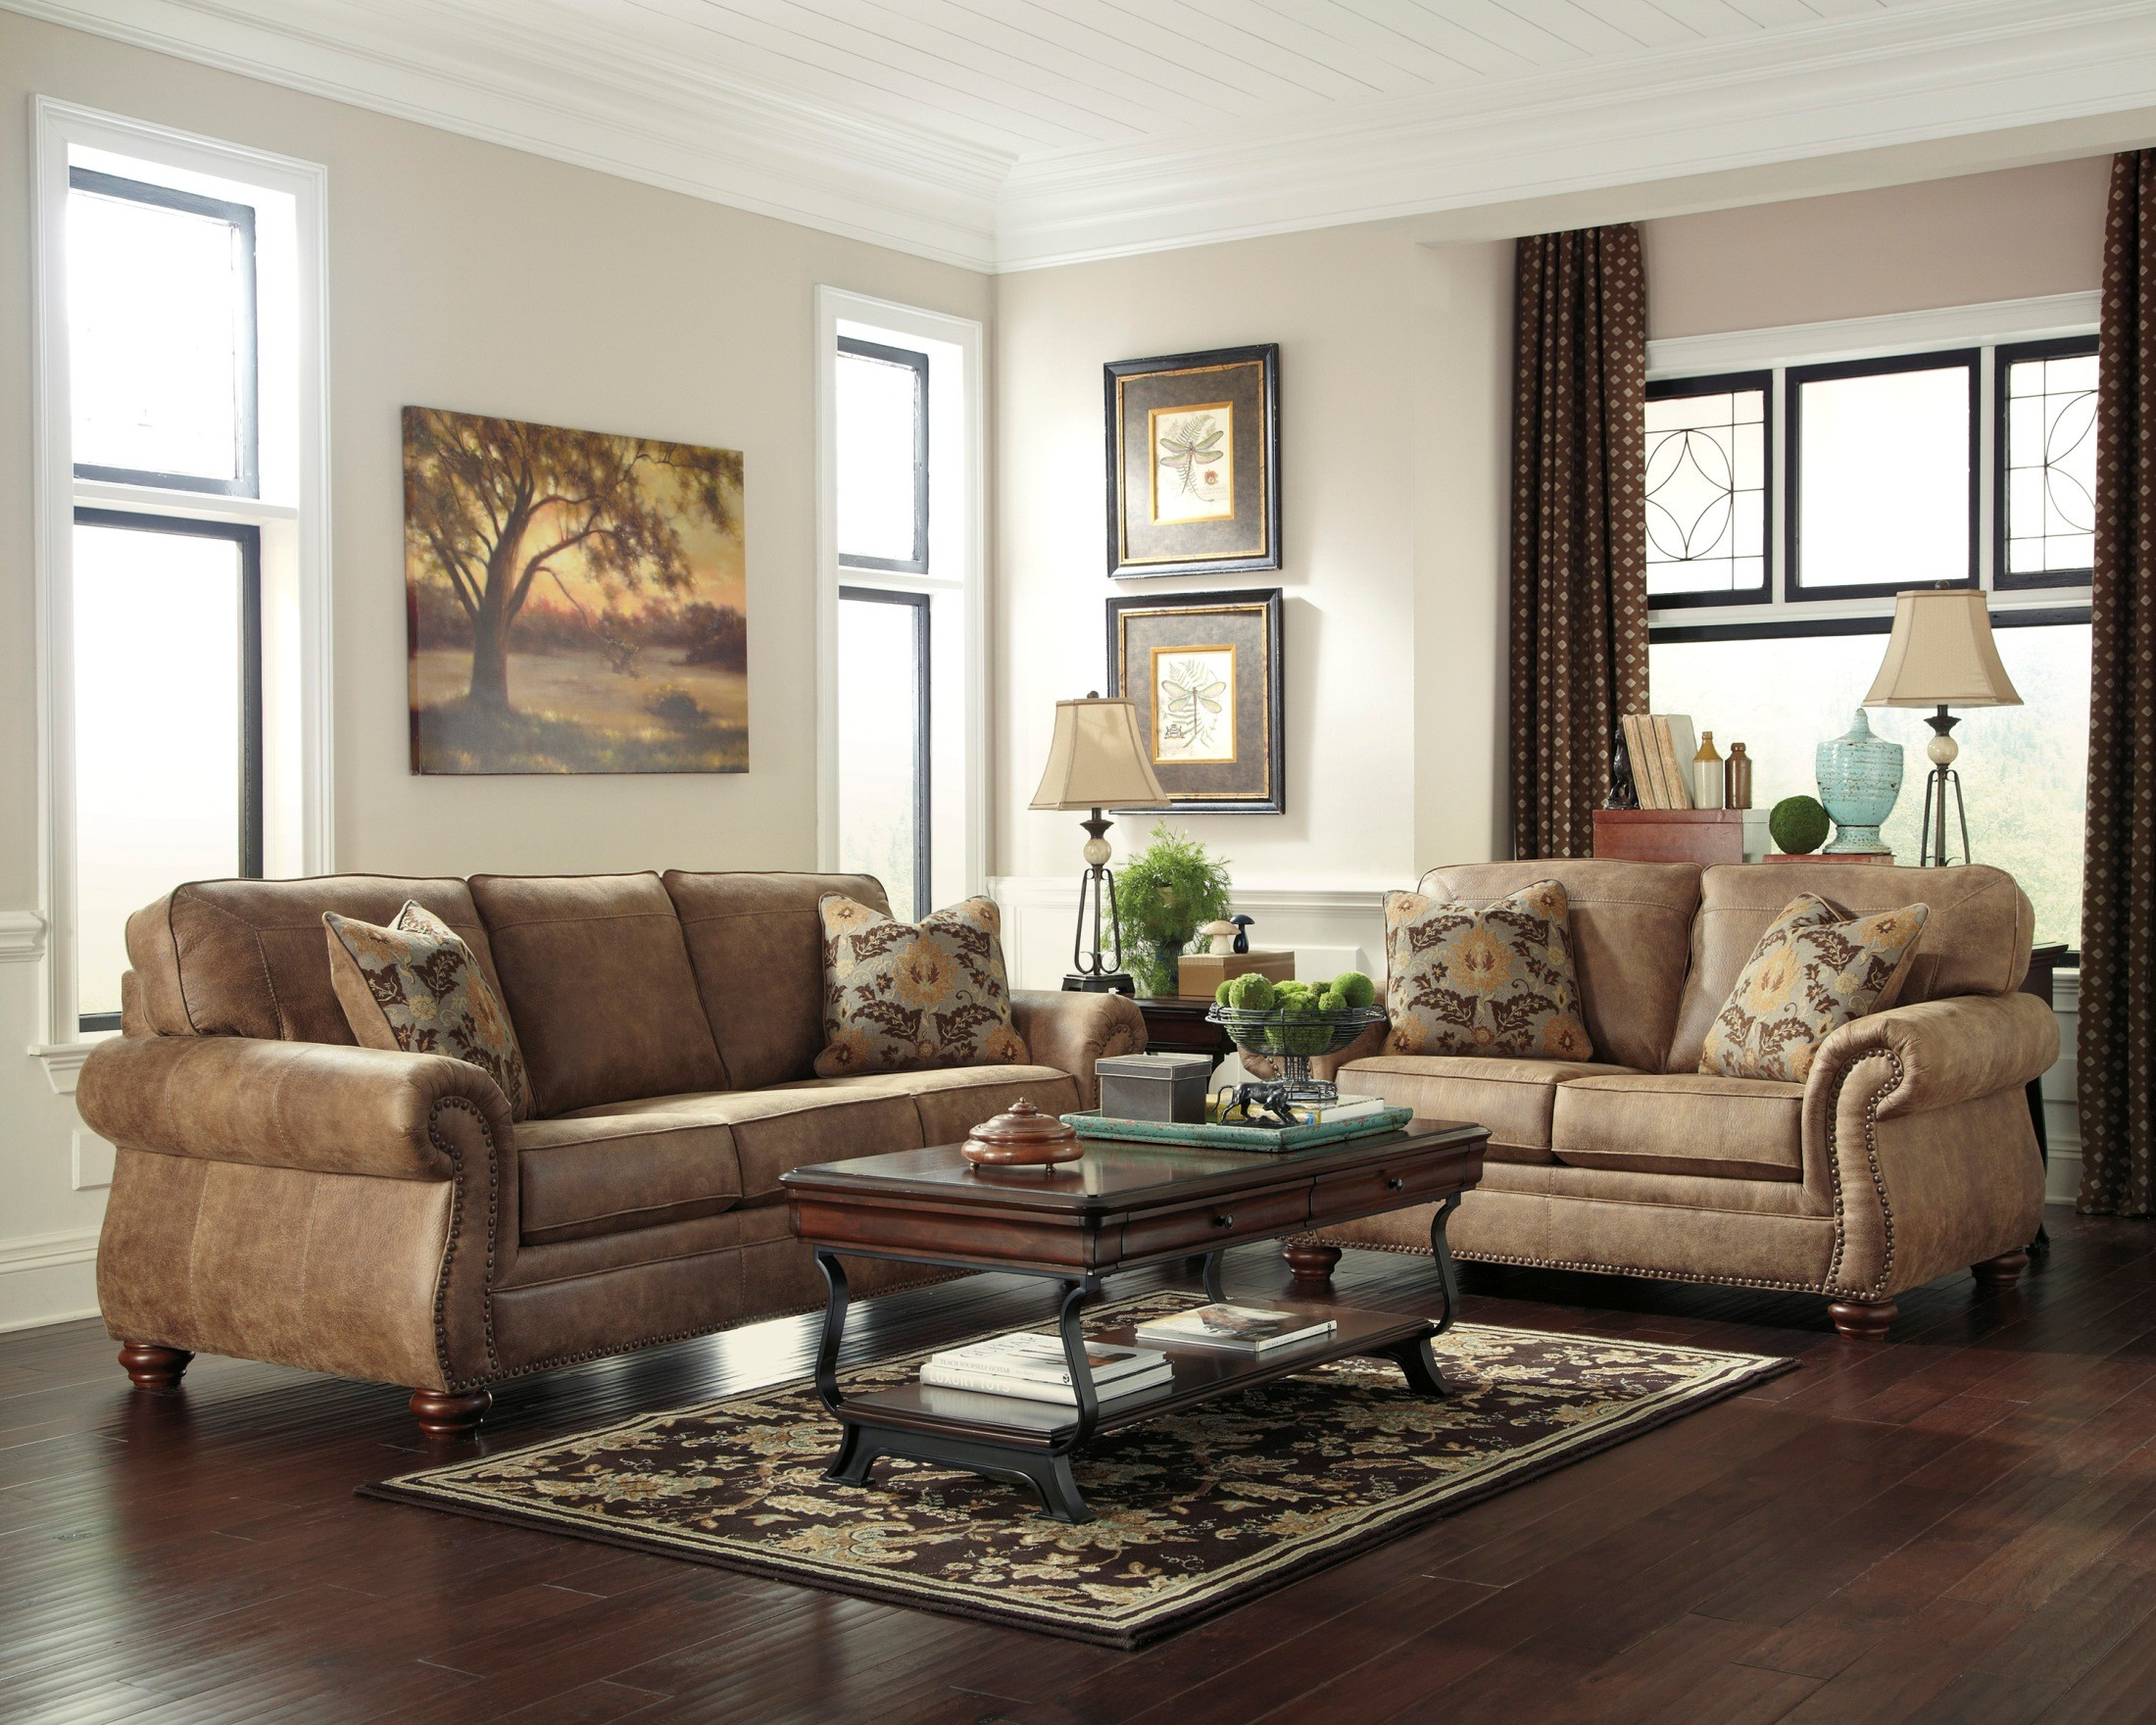 Larkinhurst Earth Living Room Set From Ashley (31901-38-35